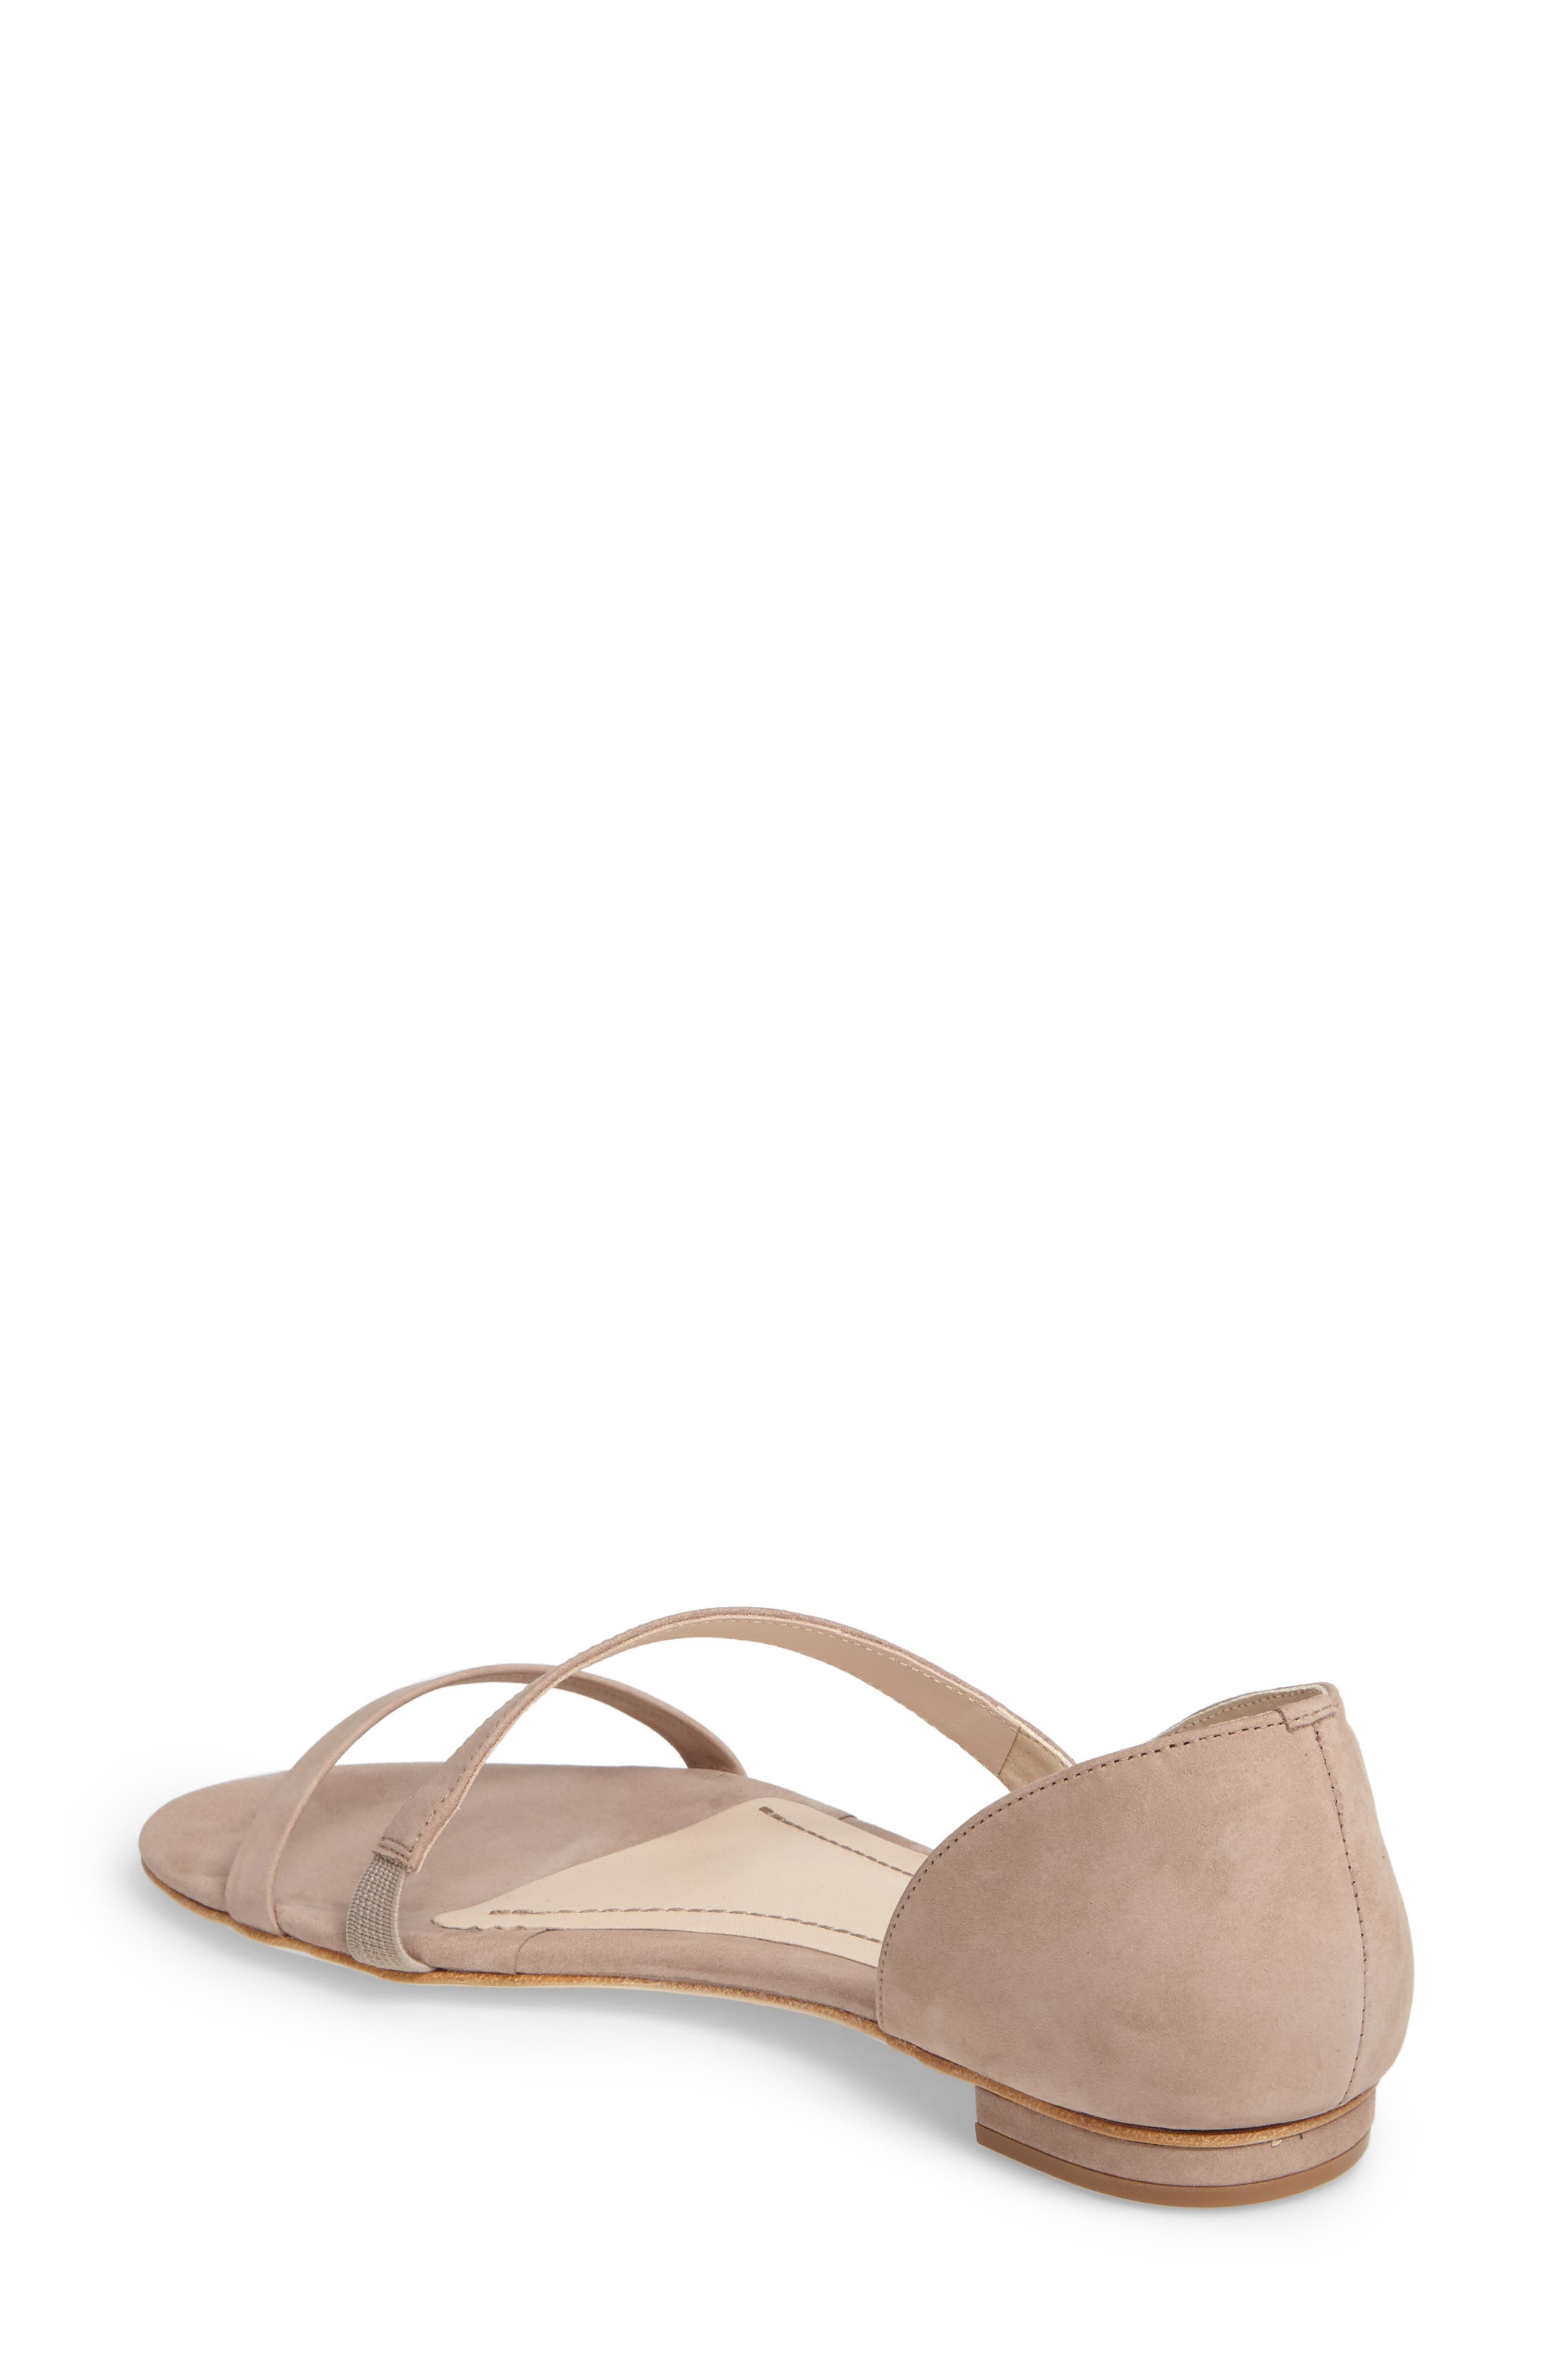 Jeanne Sandal,                             Alternate thumbnail 2, color,                             TAUPE LEATHER